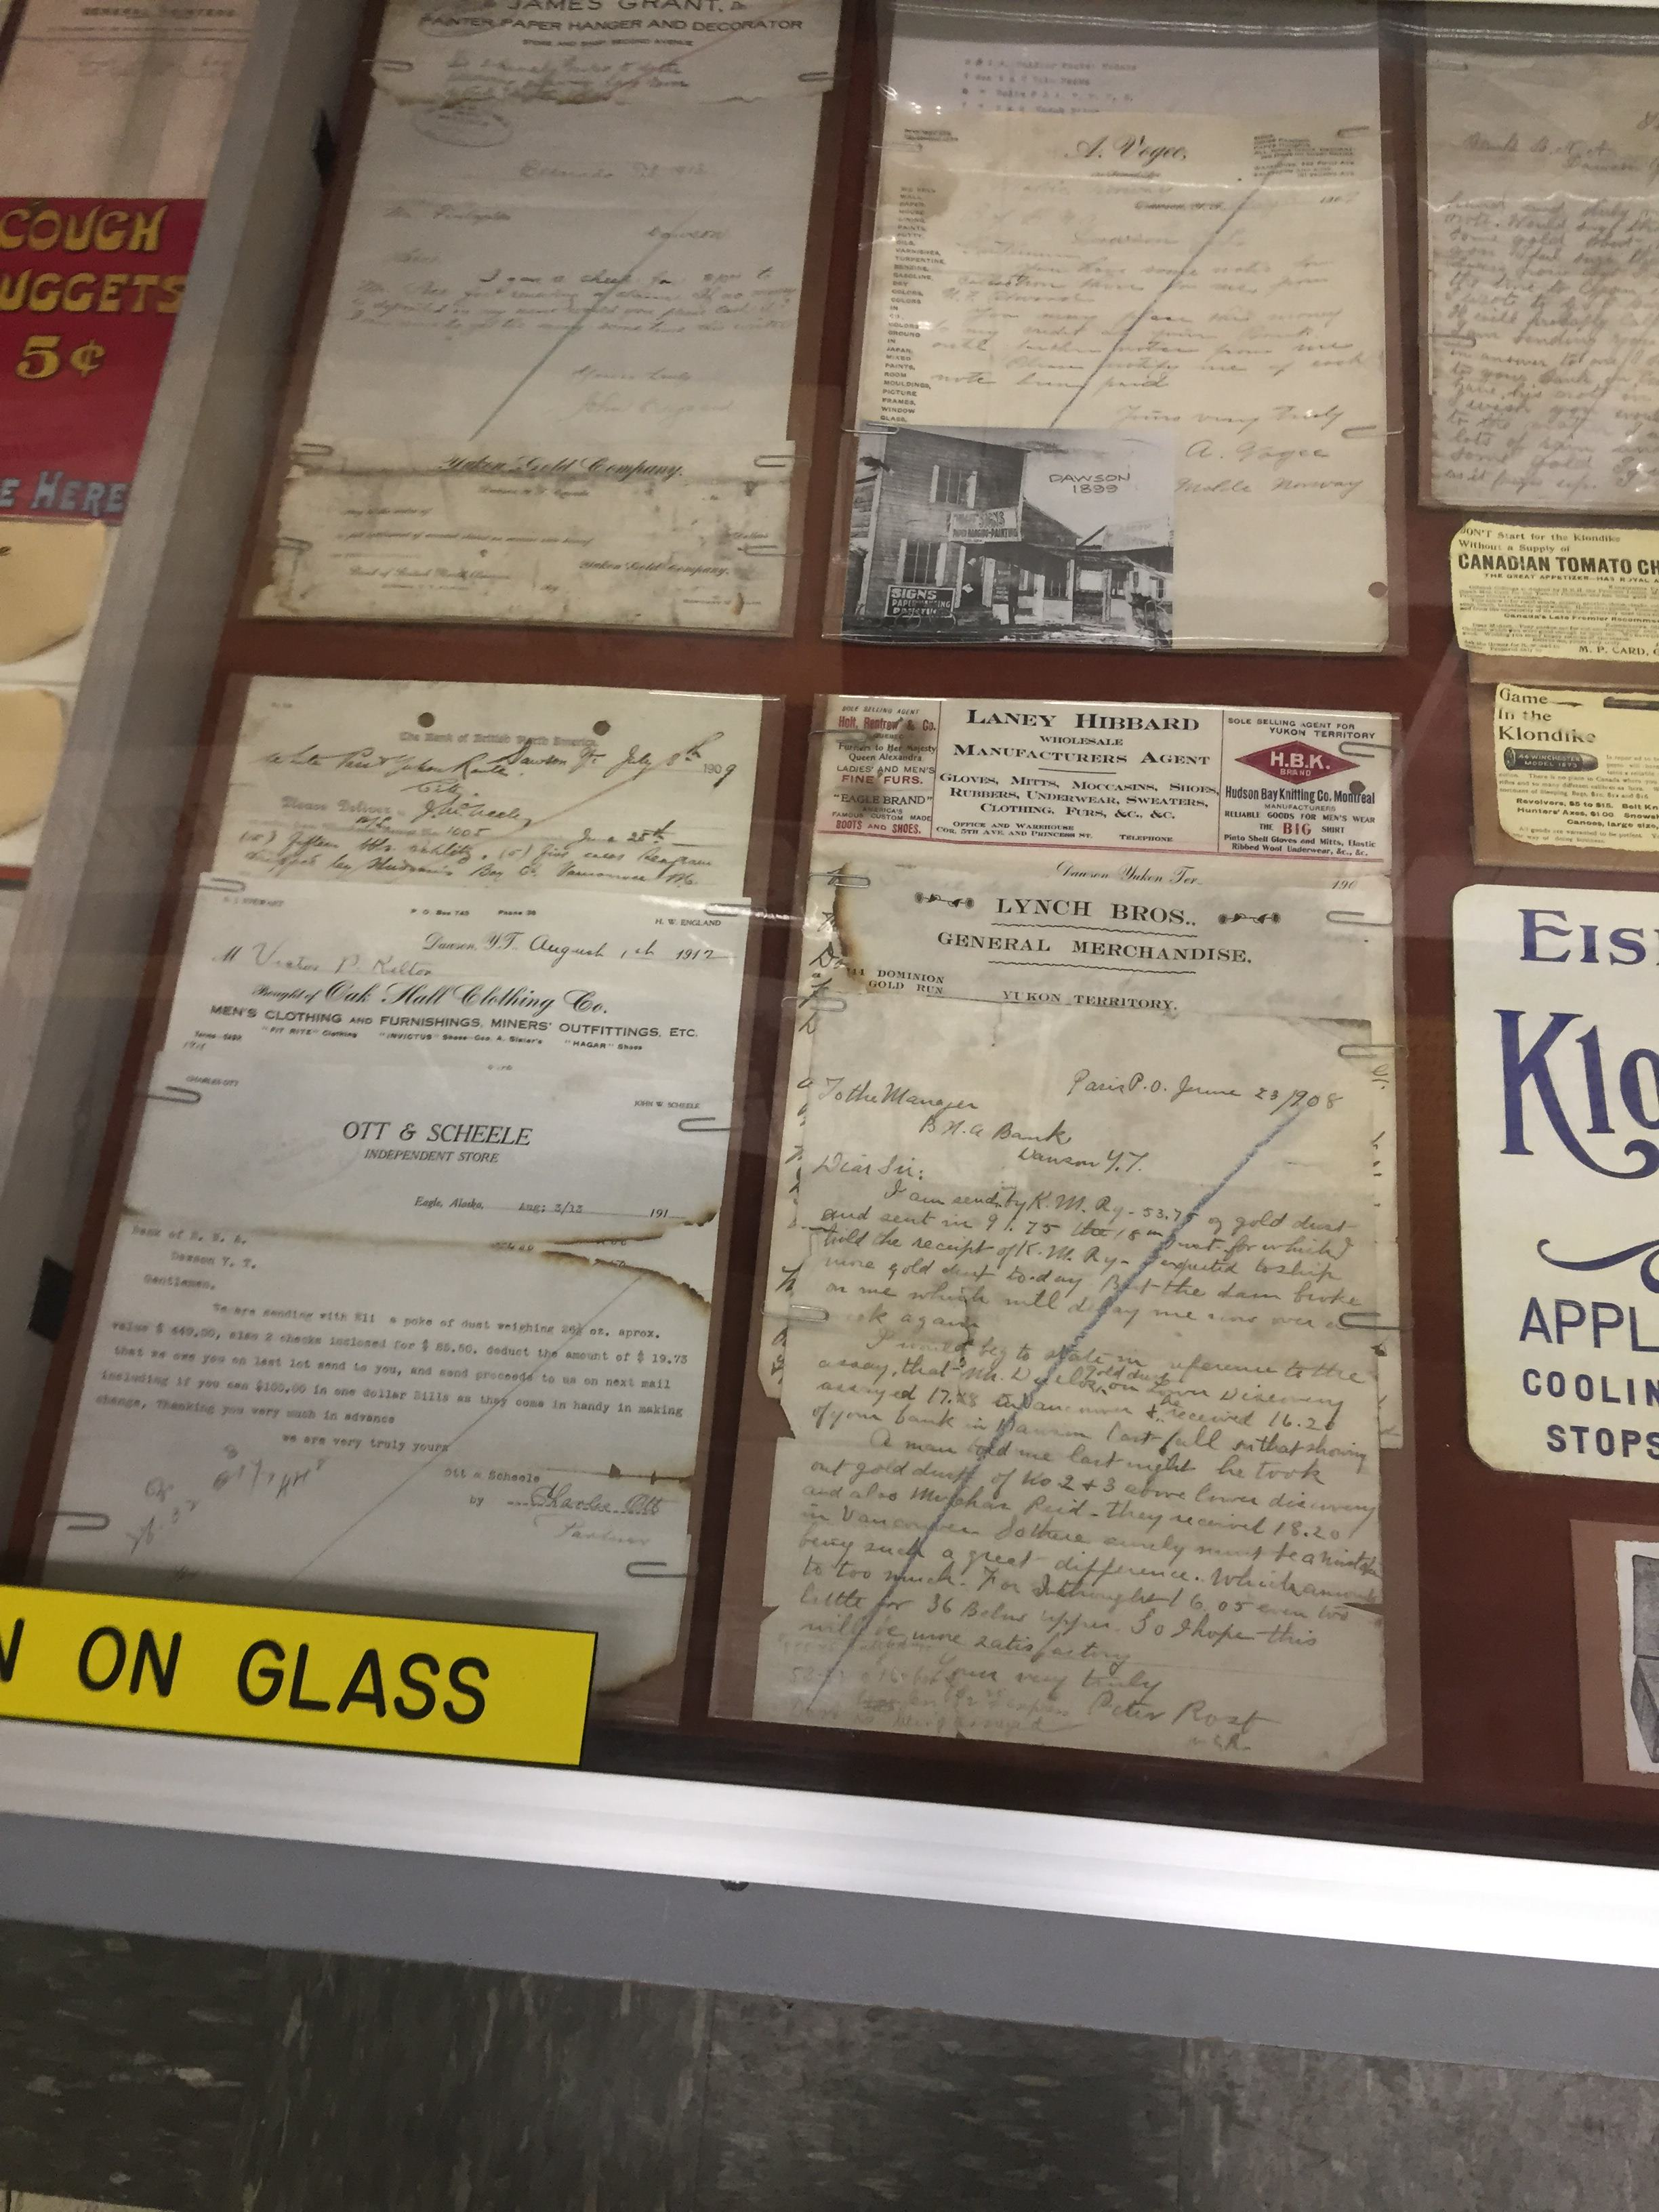 Letters from miners to businesses, paying for goods and services in gold dust